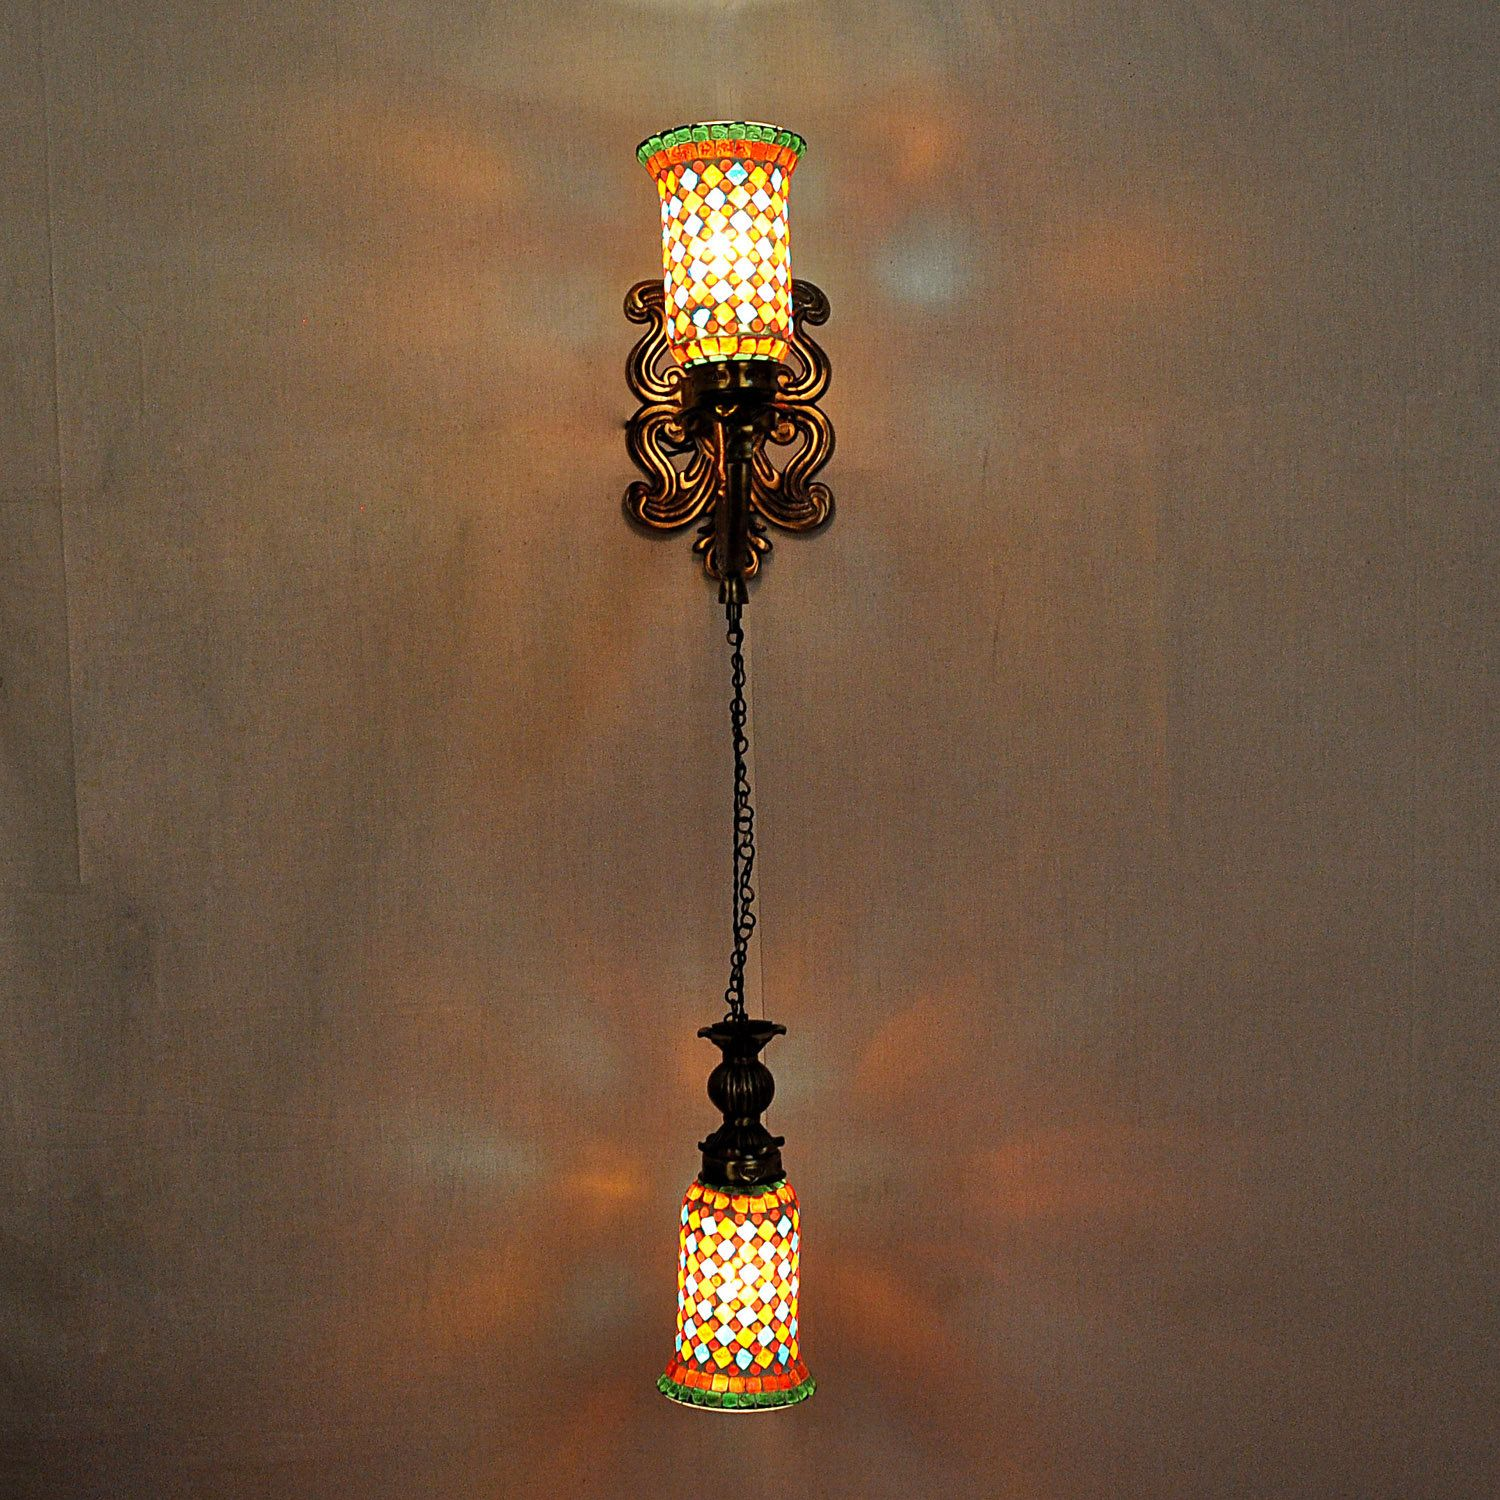 Wall sconces house wall decor mosaic glass 2 light lampshades